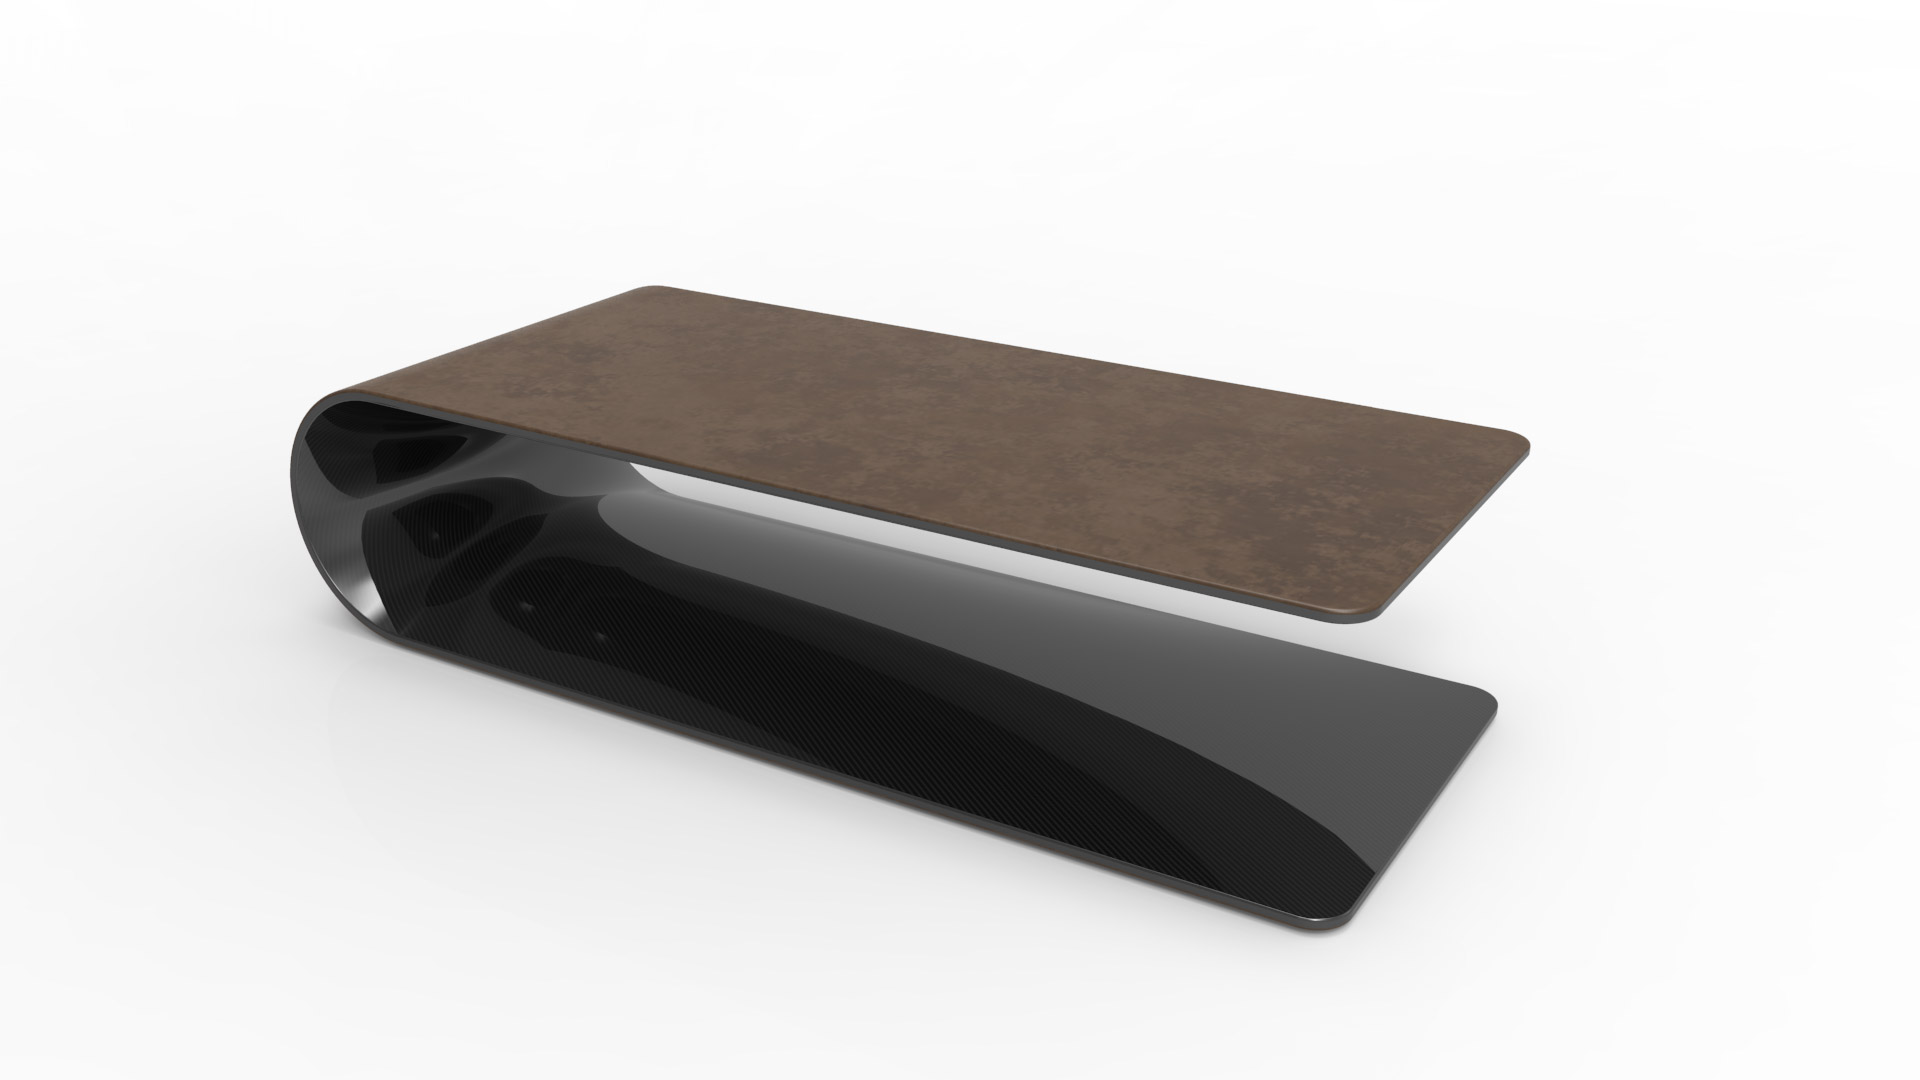 BOOMERANG. Low table or side table made of carbon fiber, Kevlar and structural foam. Leather coated on the outside, glossy transparent painted carbon fiber on the inside.